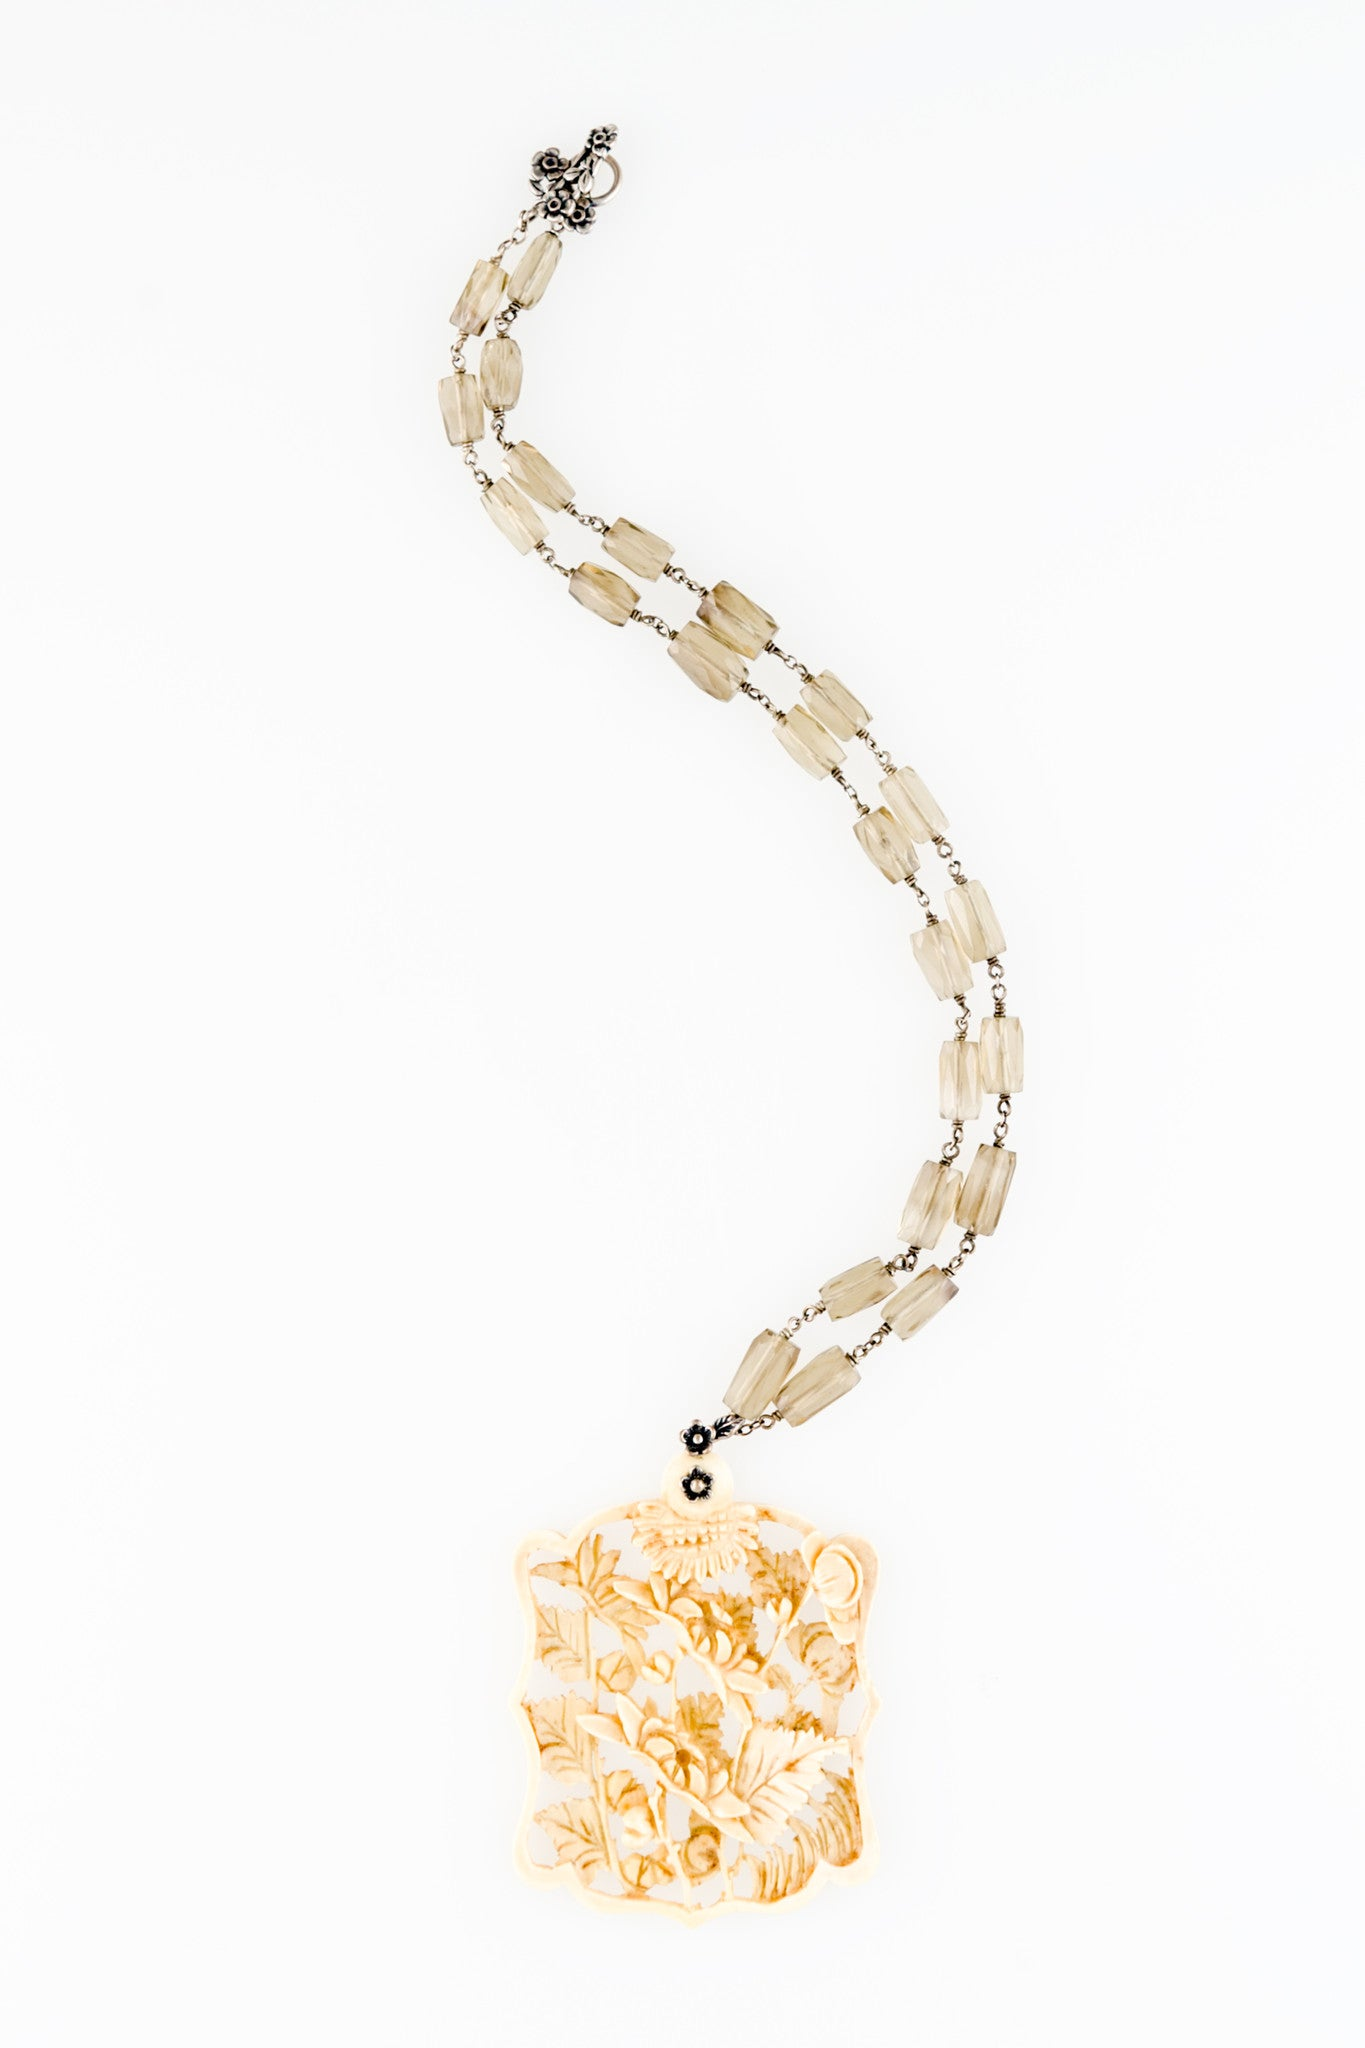 Circa 1920 Vintage Hand Carved Bone Floral One of a kind Necklace by Sage - The Sage Lifestyle